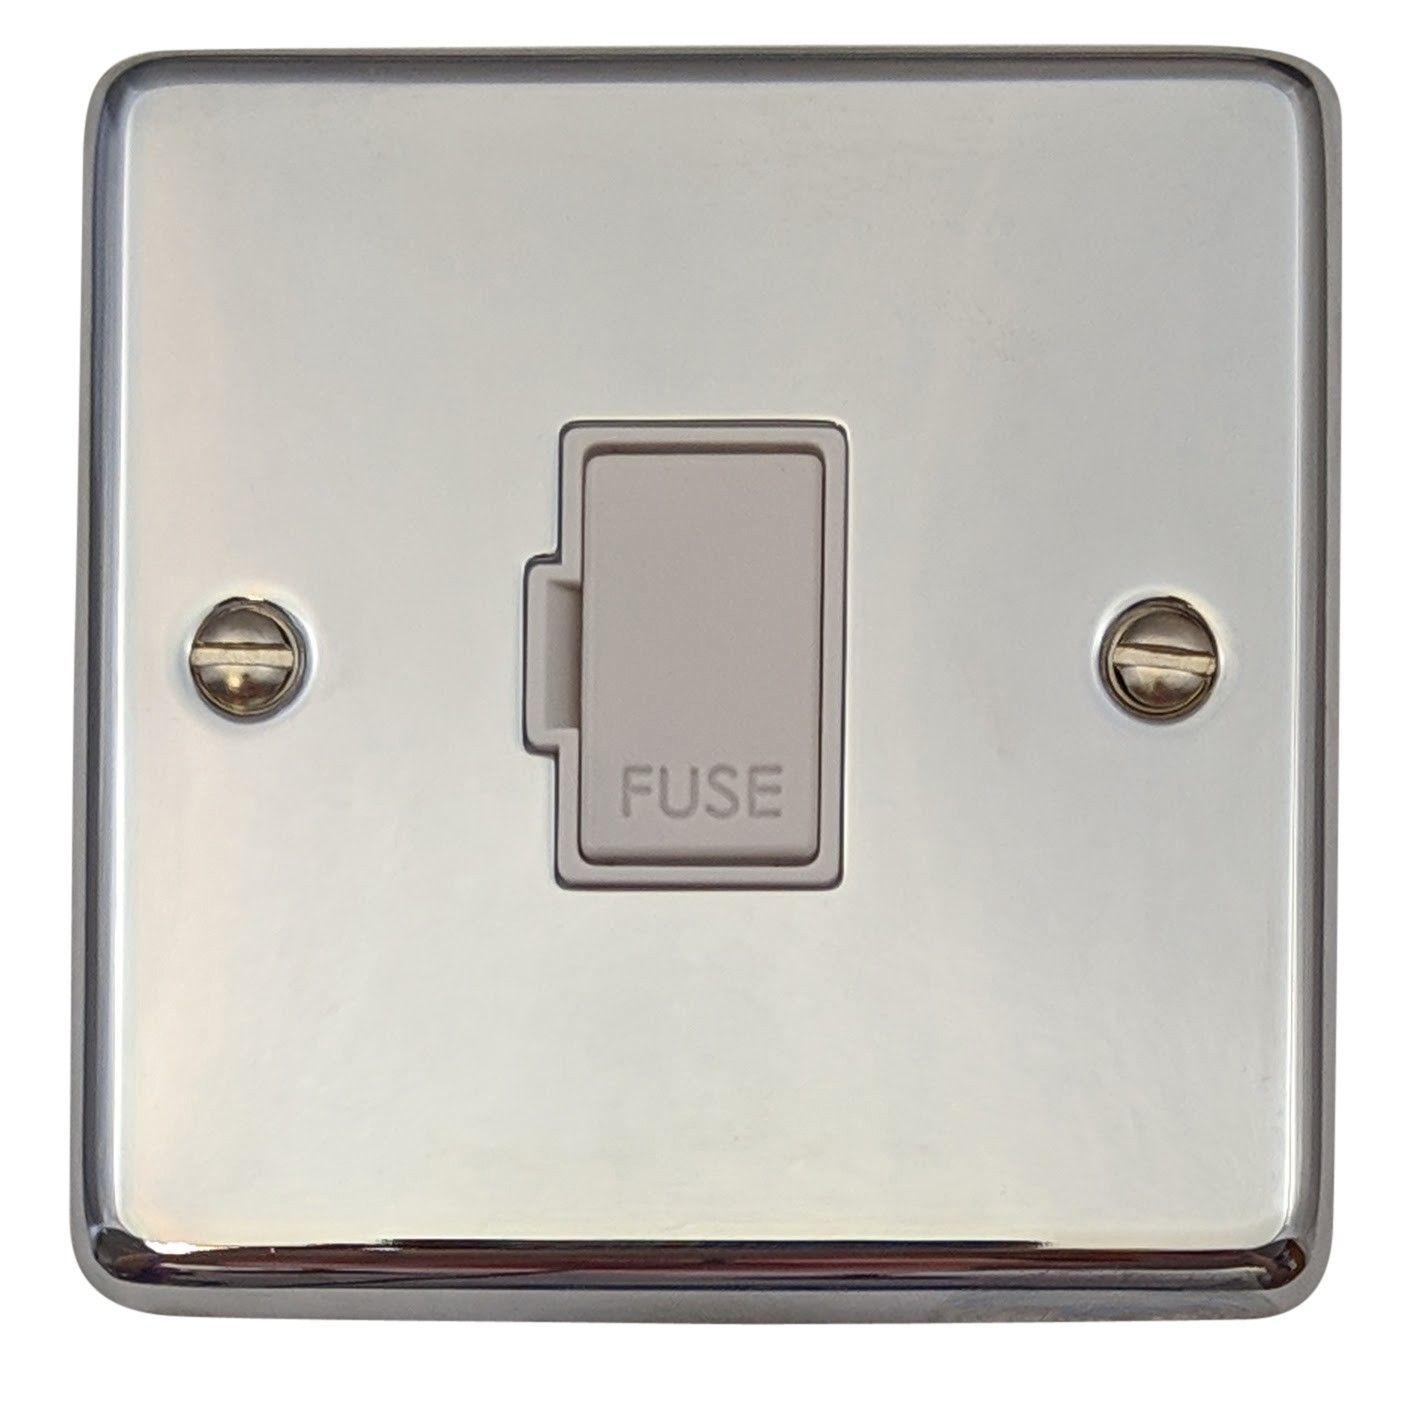 G&H CC90W Standard Plate Polished Chrome 1 Gang Fused Spur 13A Unswitched